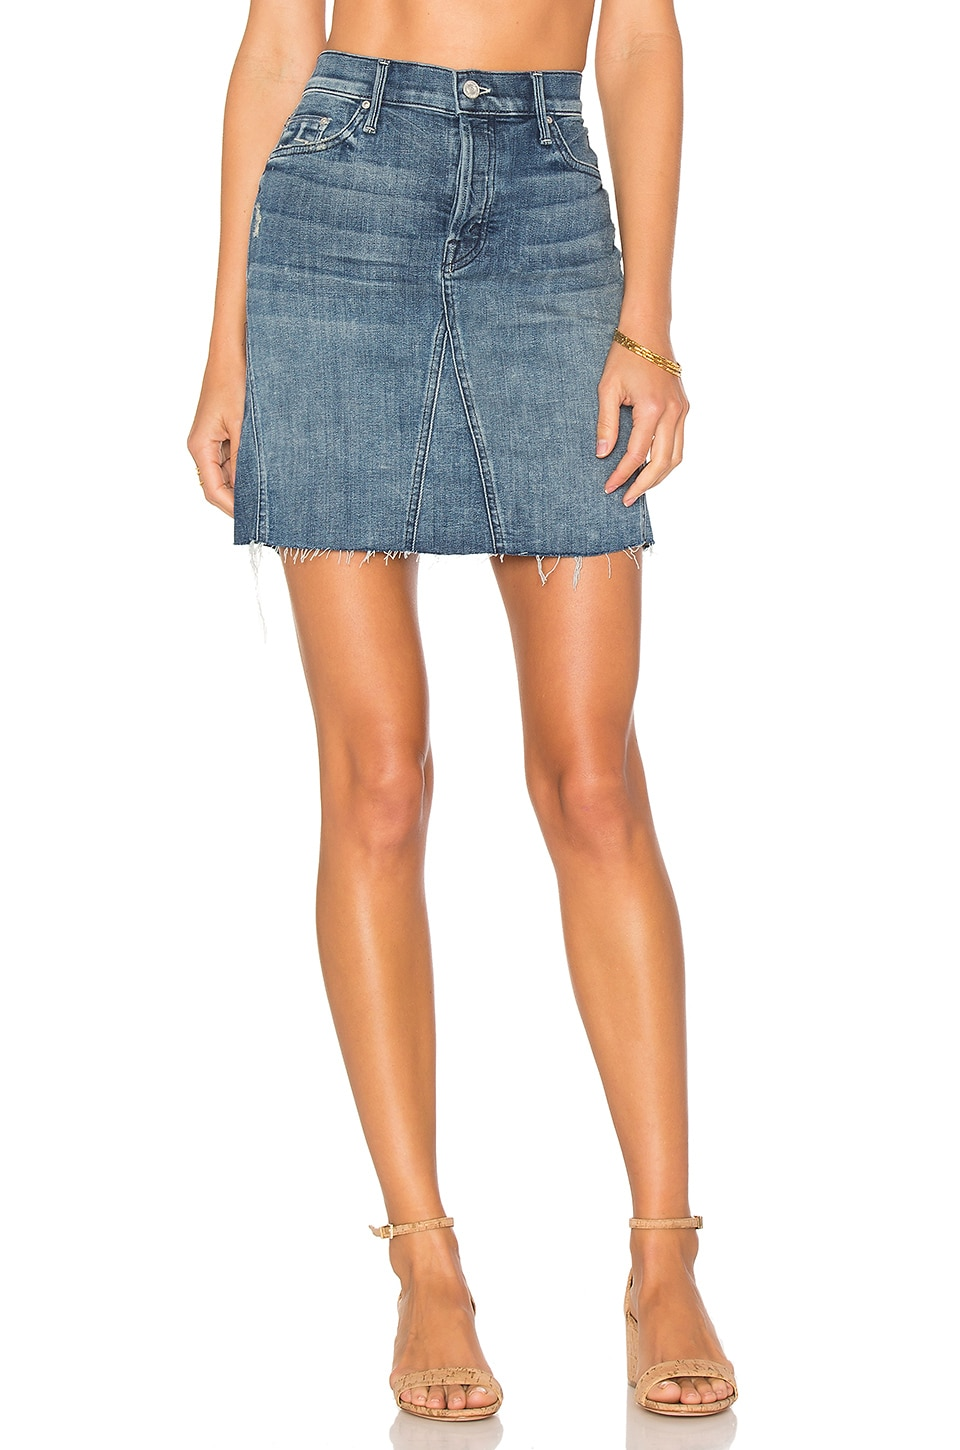 The Four Points Mini Skirt by MOTHER